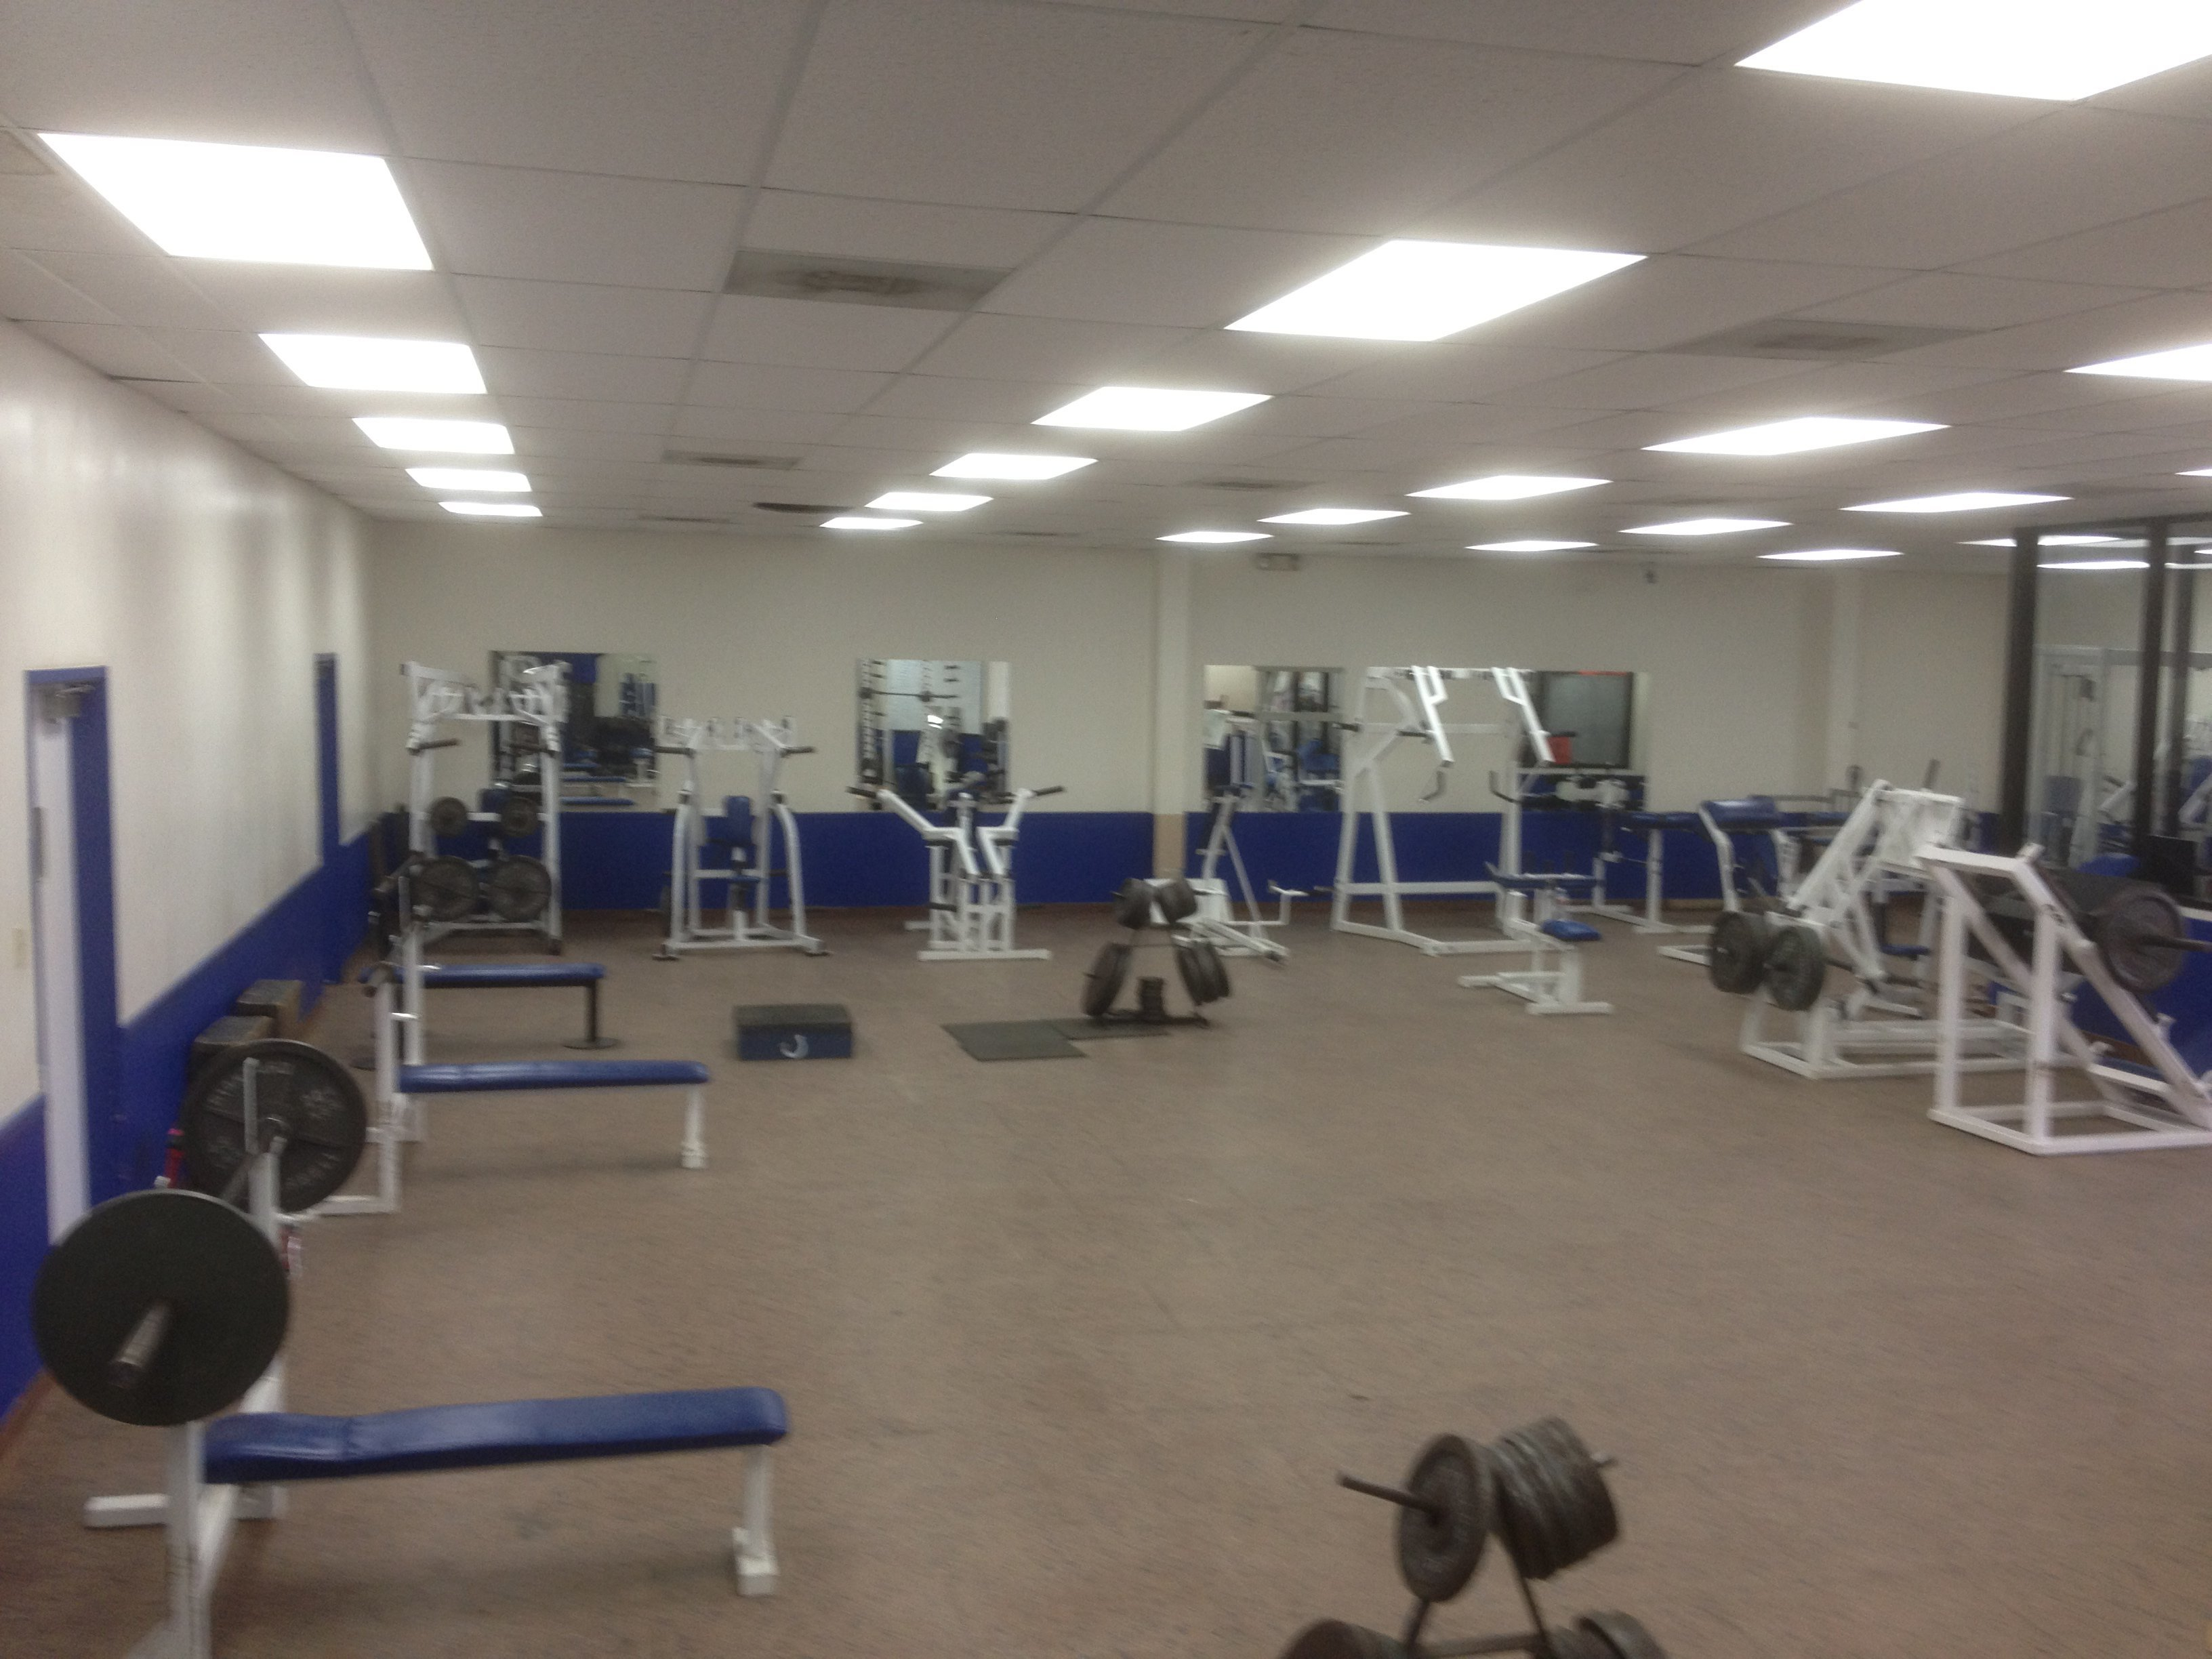 Weight-Room-4.JPG#asset:1901